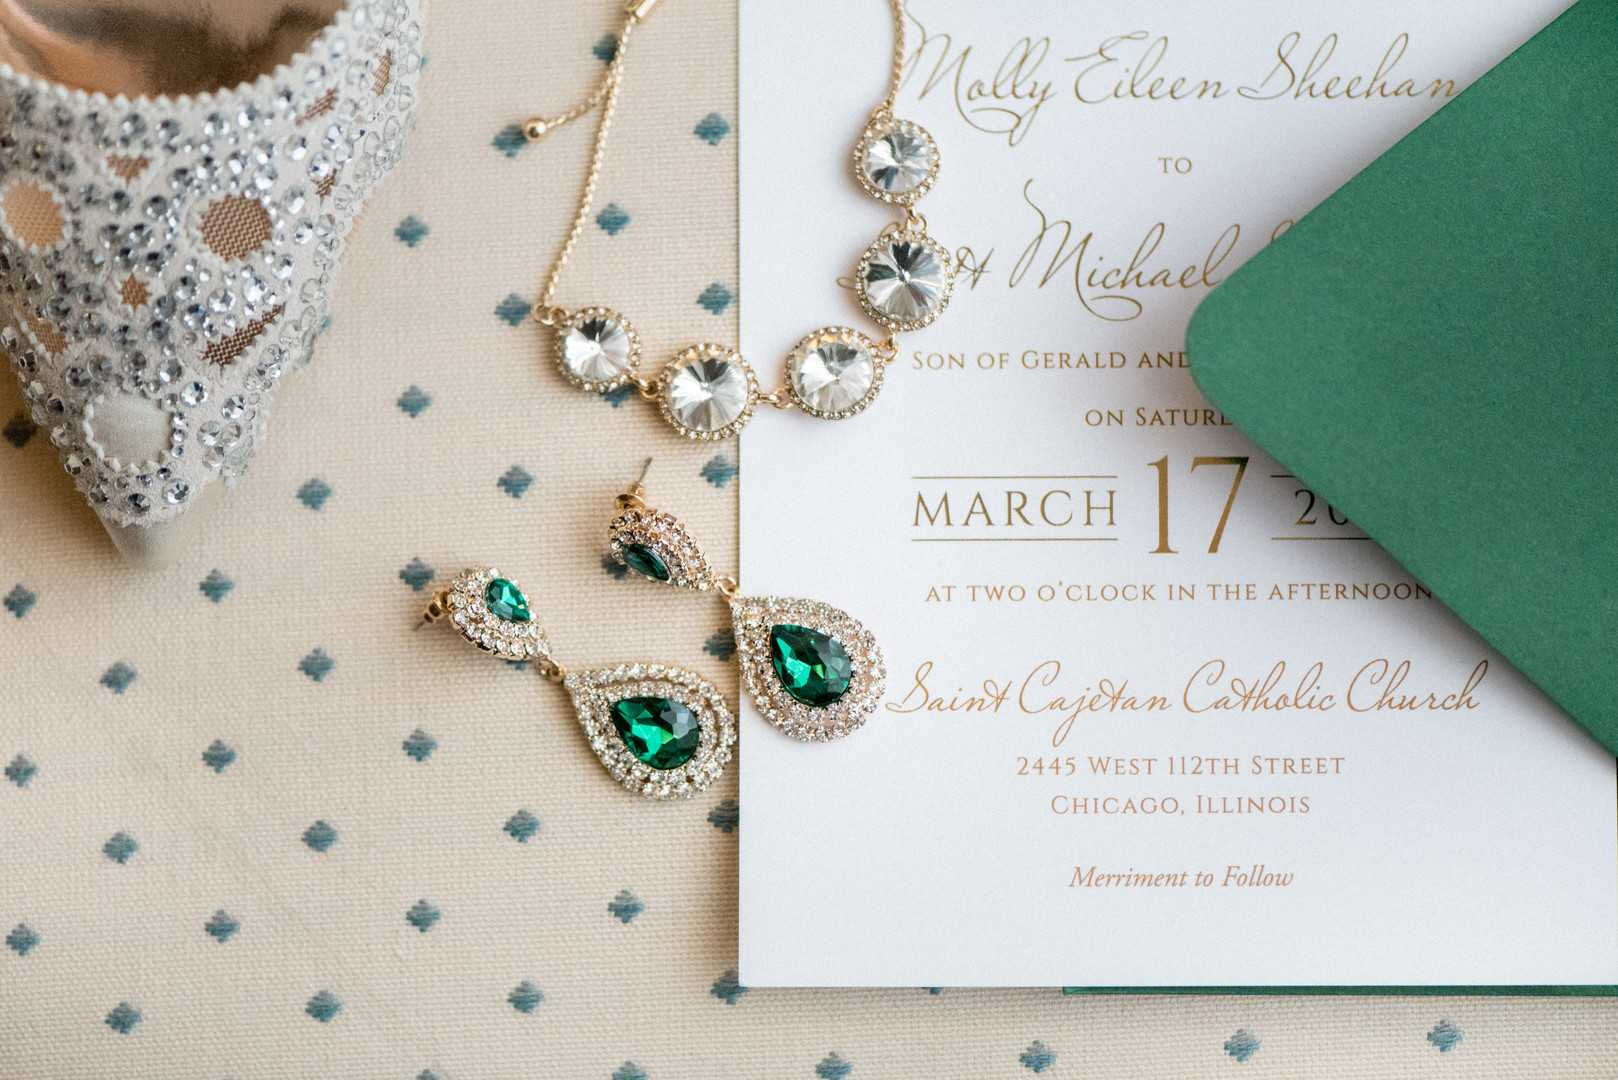 Jewelry and Wedding Invitation | A Stunning St. Patrick's Day Wedding | Kate Aspen